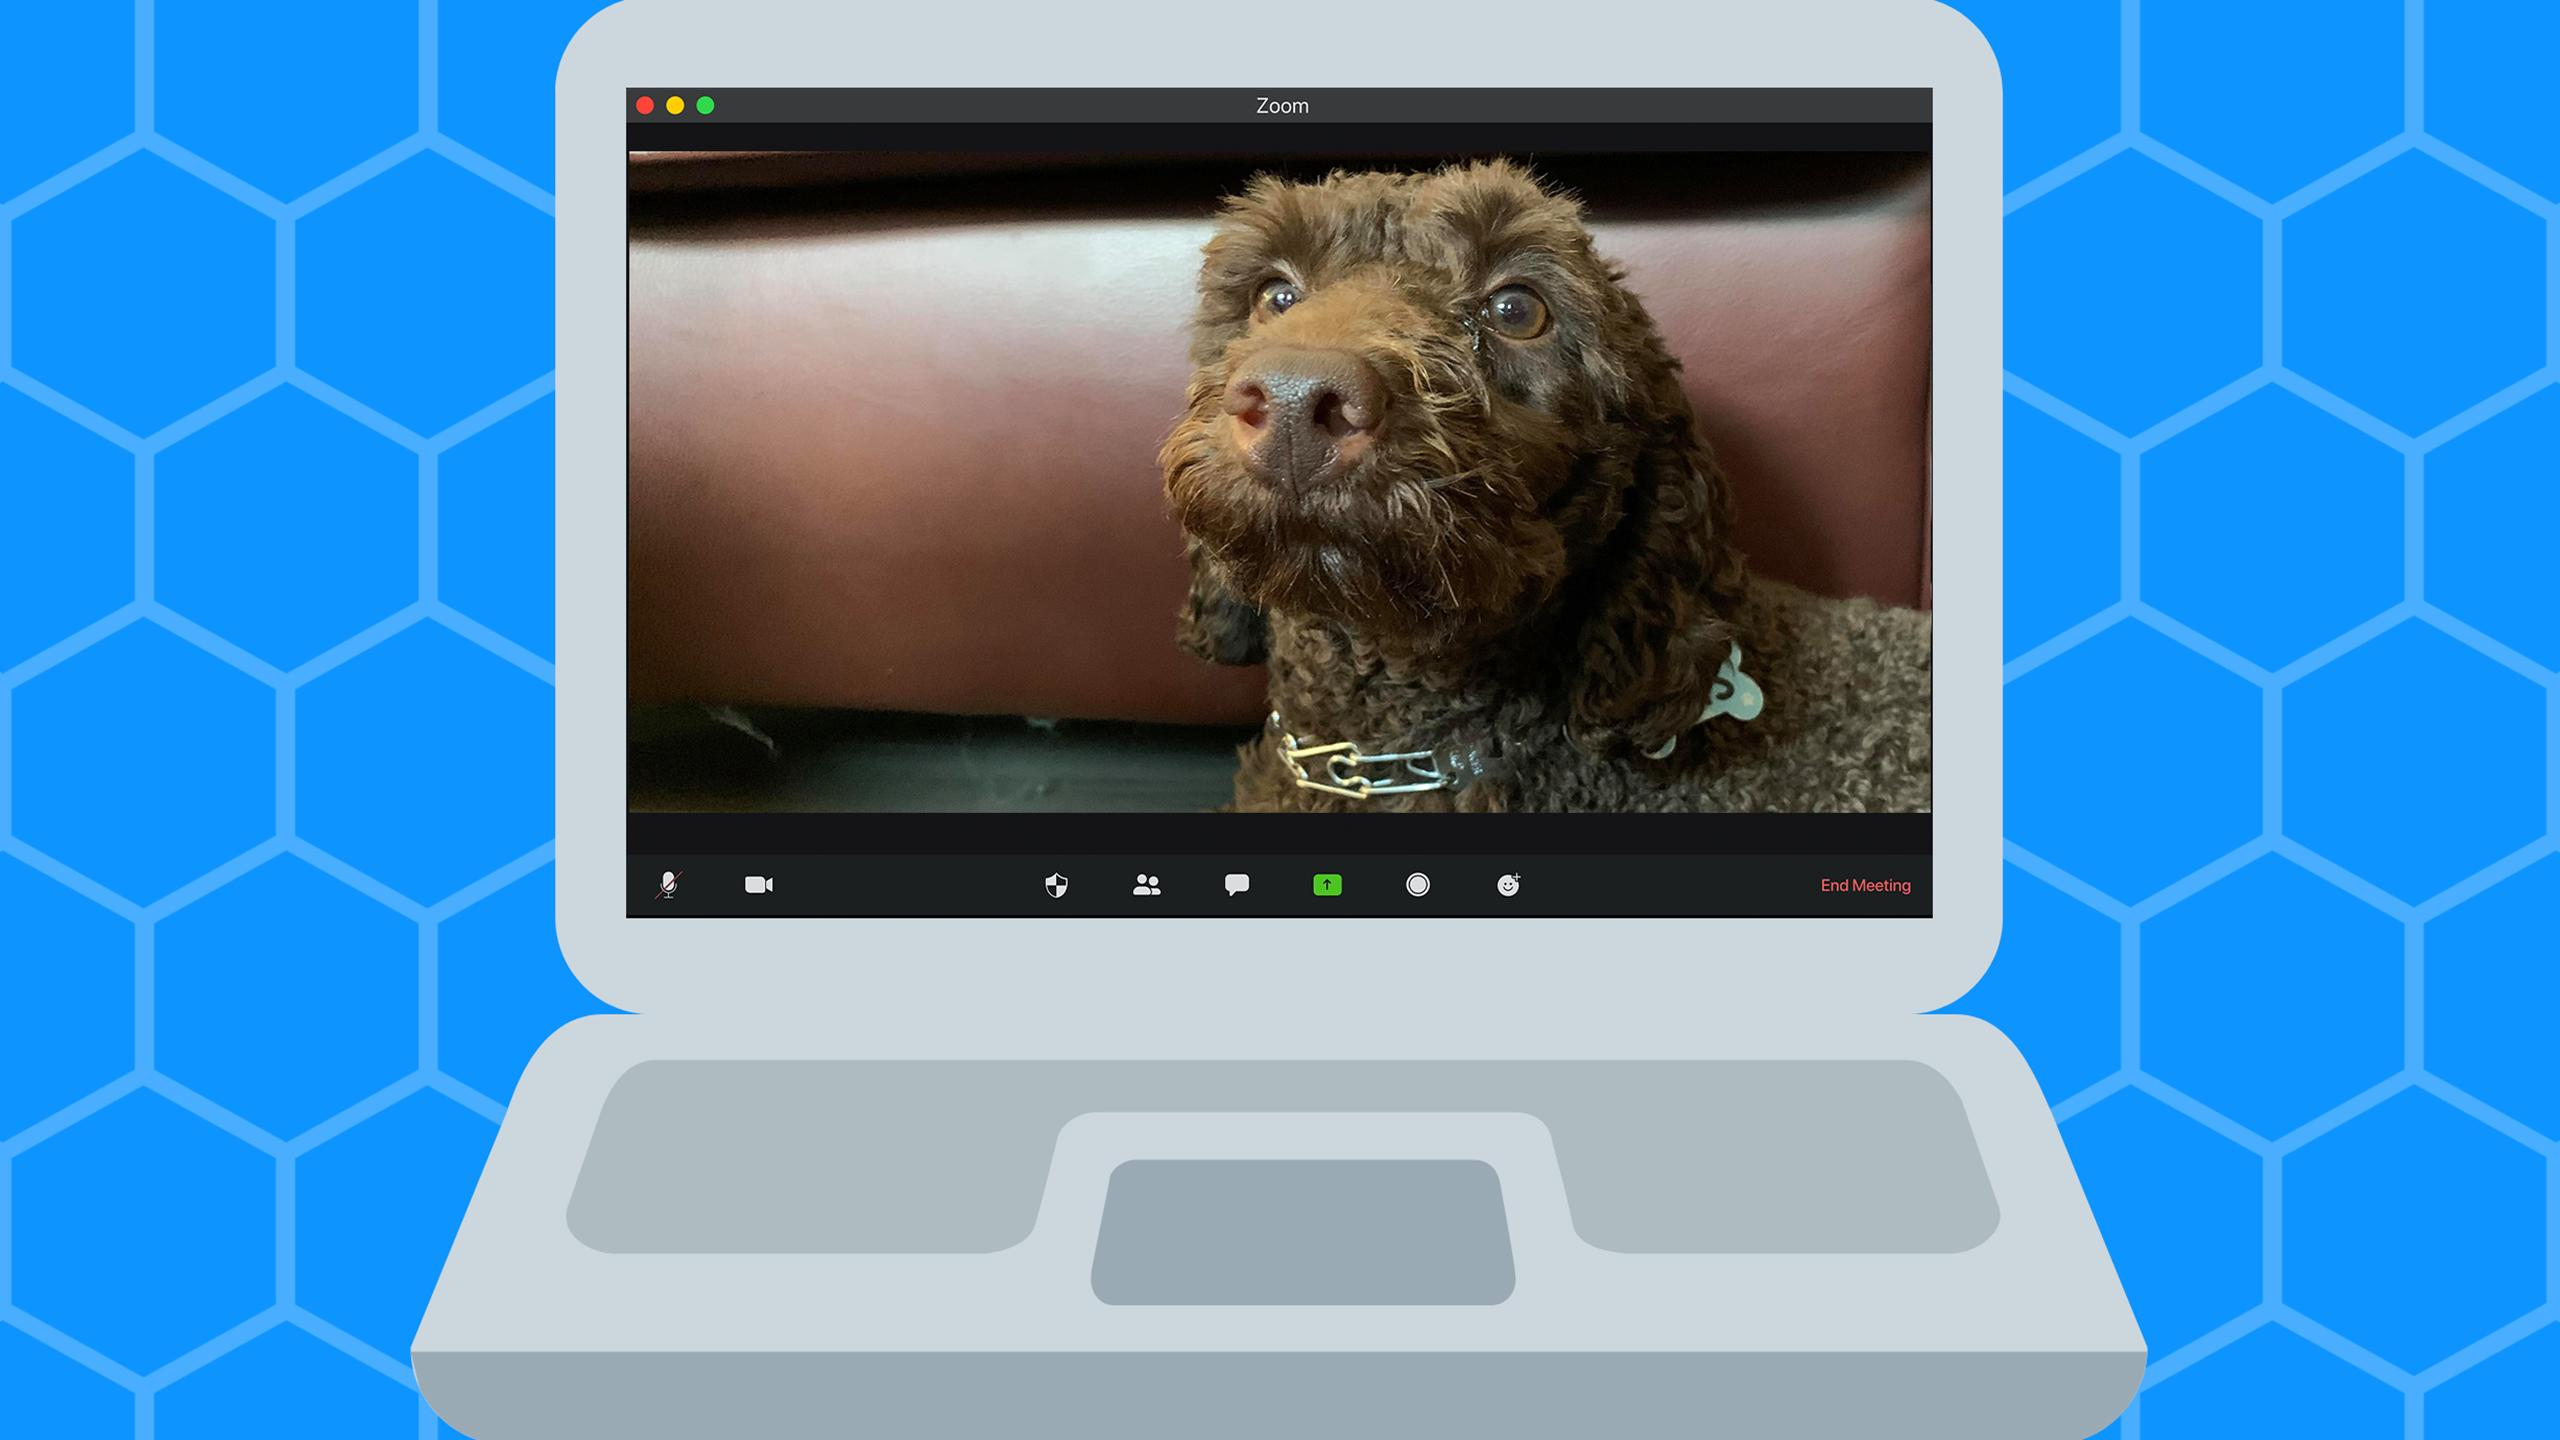 Very very cute dog on Zoom